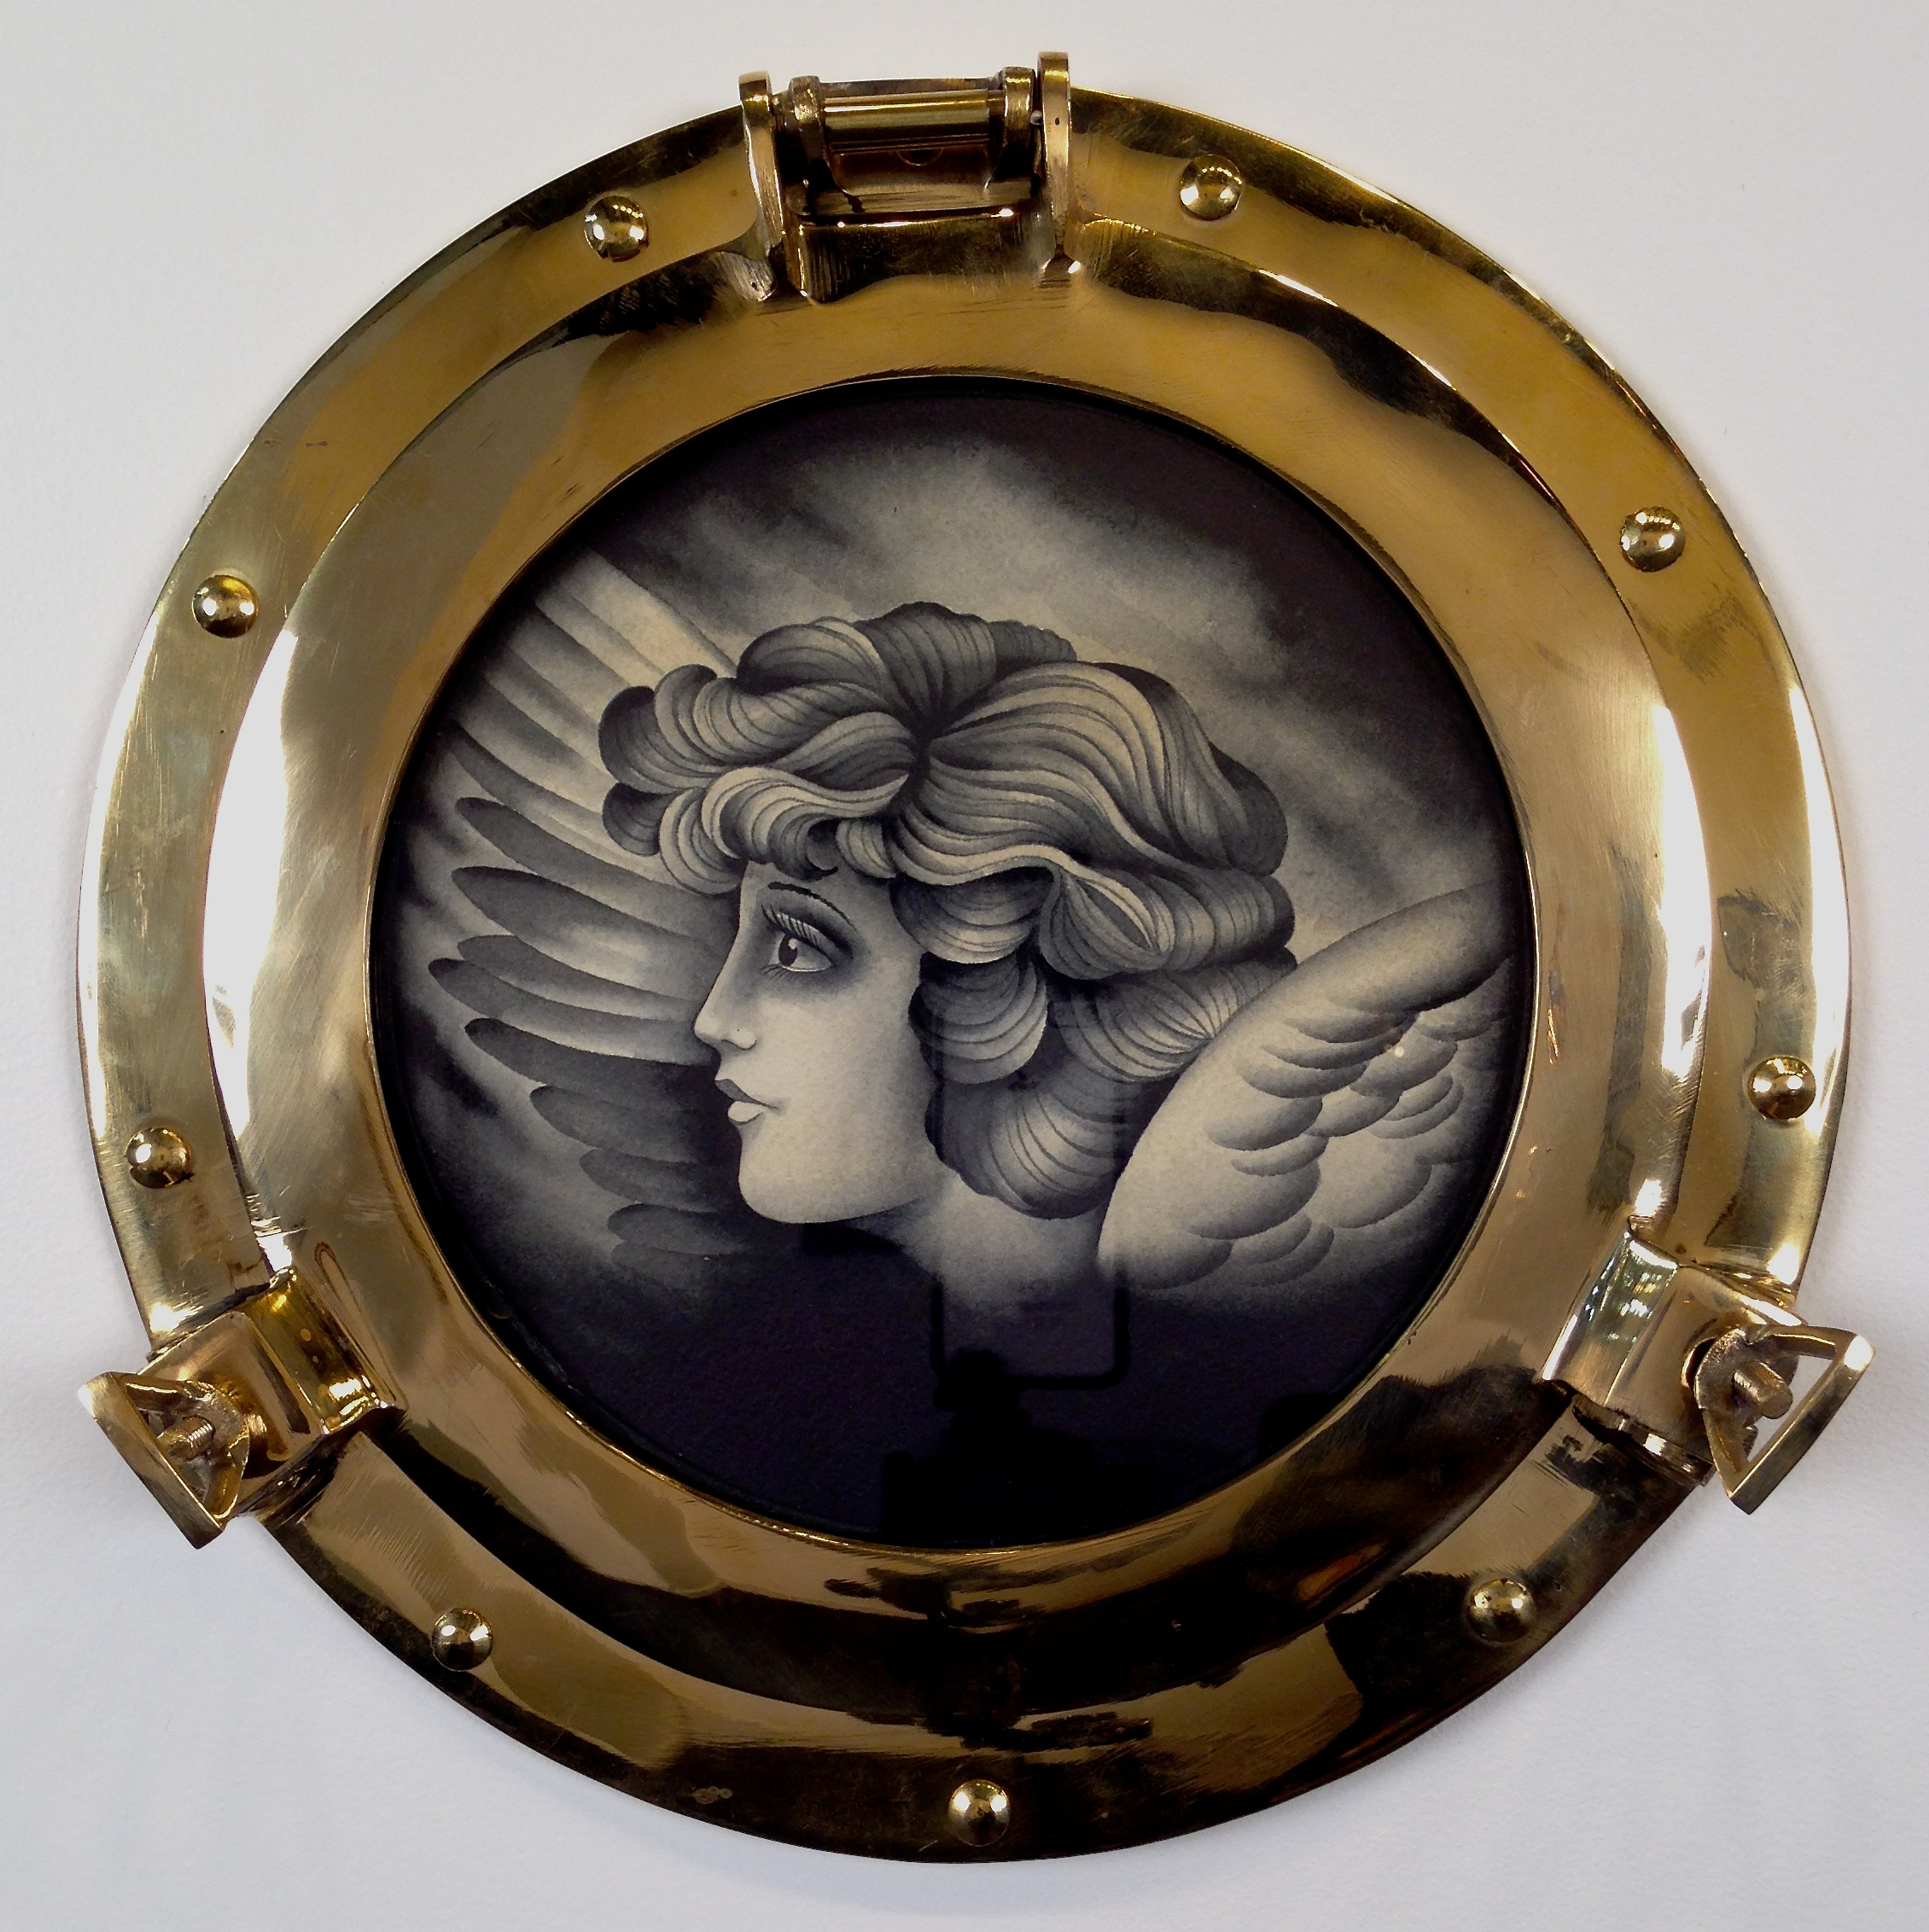 """Port Hole: """"Redemption"""" by P. Dobleman Watercolor on Paper 11 in. round framed $400"""